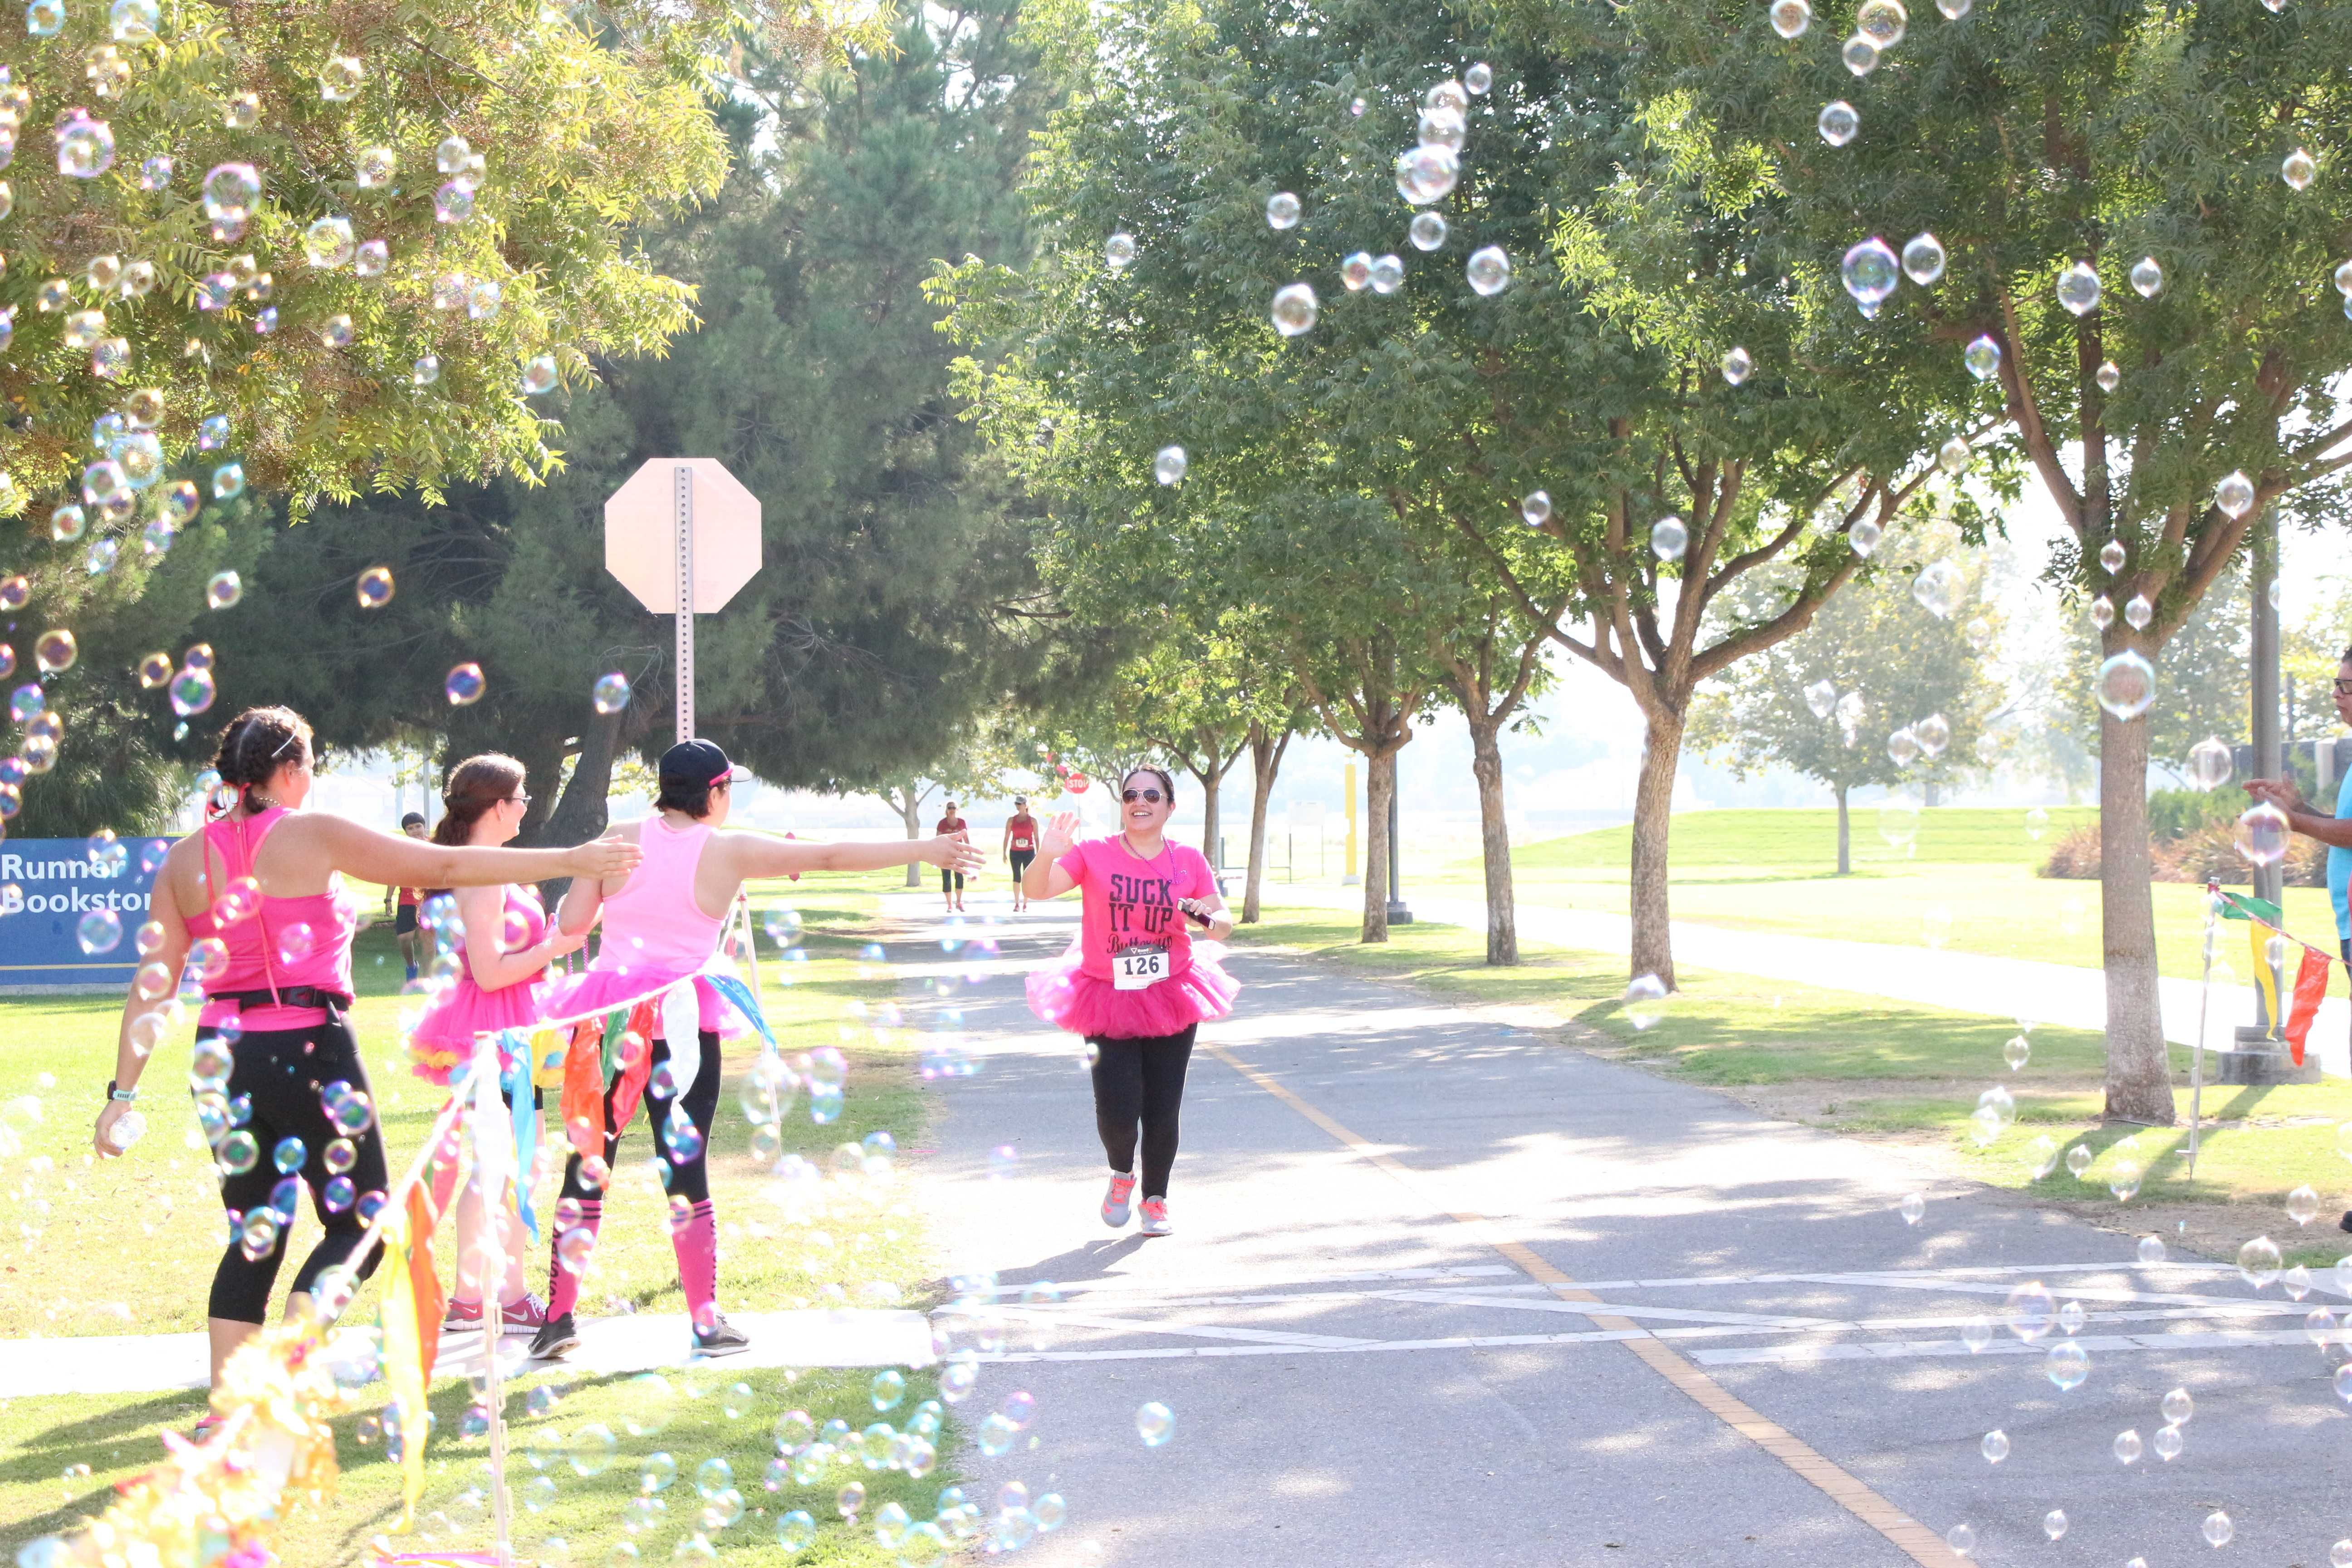 Participants in tutus high-fiving their teammate as she is reaching the finish line of the 5K Fun Run course benefitting the organization Dress for Success on Saturday at CSUB. Photo by Alejandra Flores/ The Runner